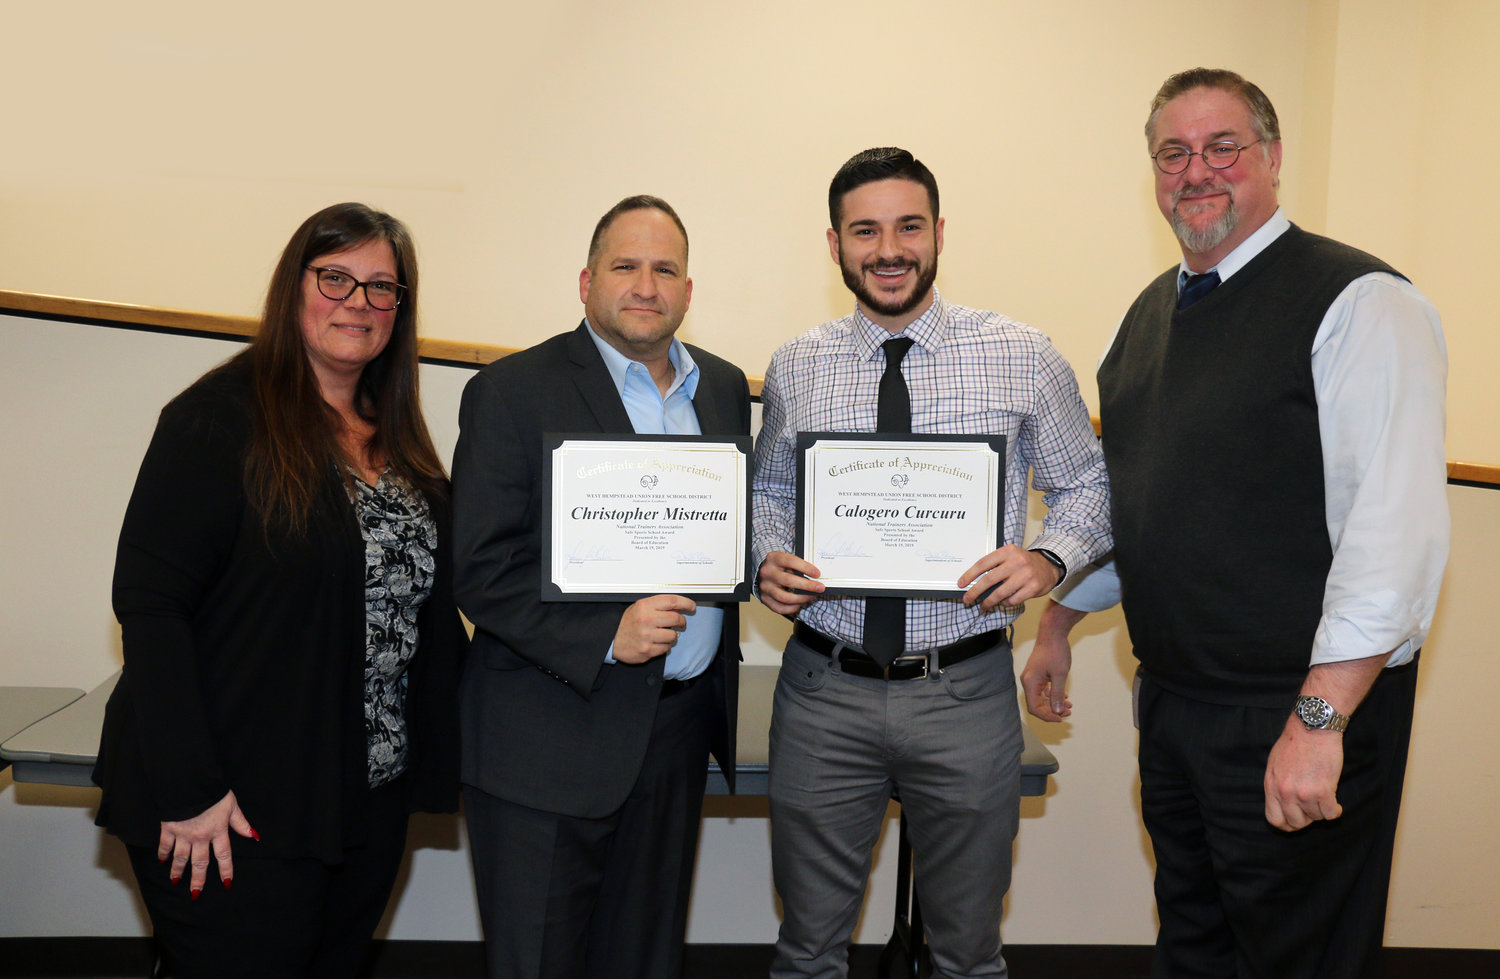 West Hempstead Board President Karen Brohm and district Superintendent Daniel Rehman, far right, congratulated Athletic Director Chris Mistretta and Athletic Trainer Calogero Curcuru for receiving the NATA Safe Sports School award on March 19.